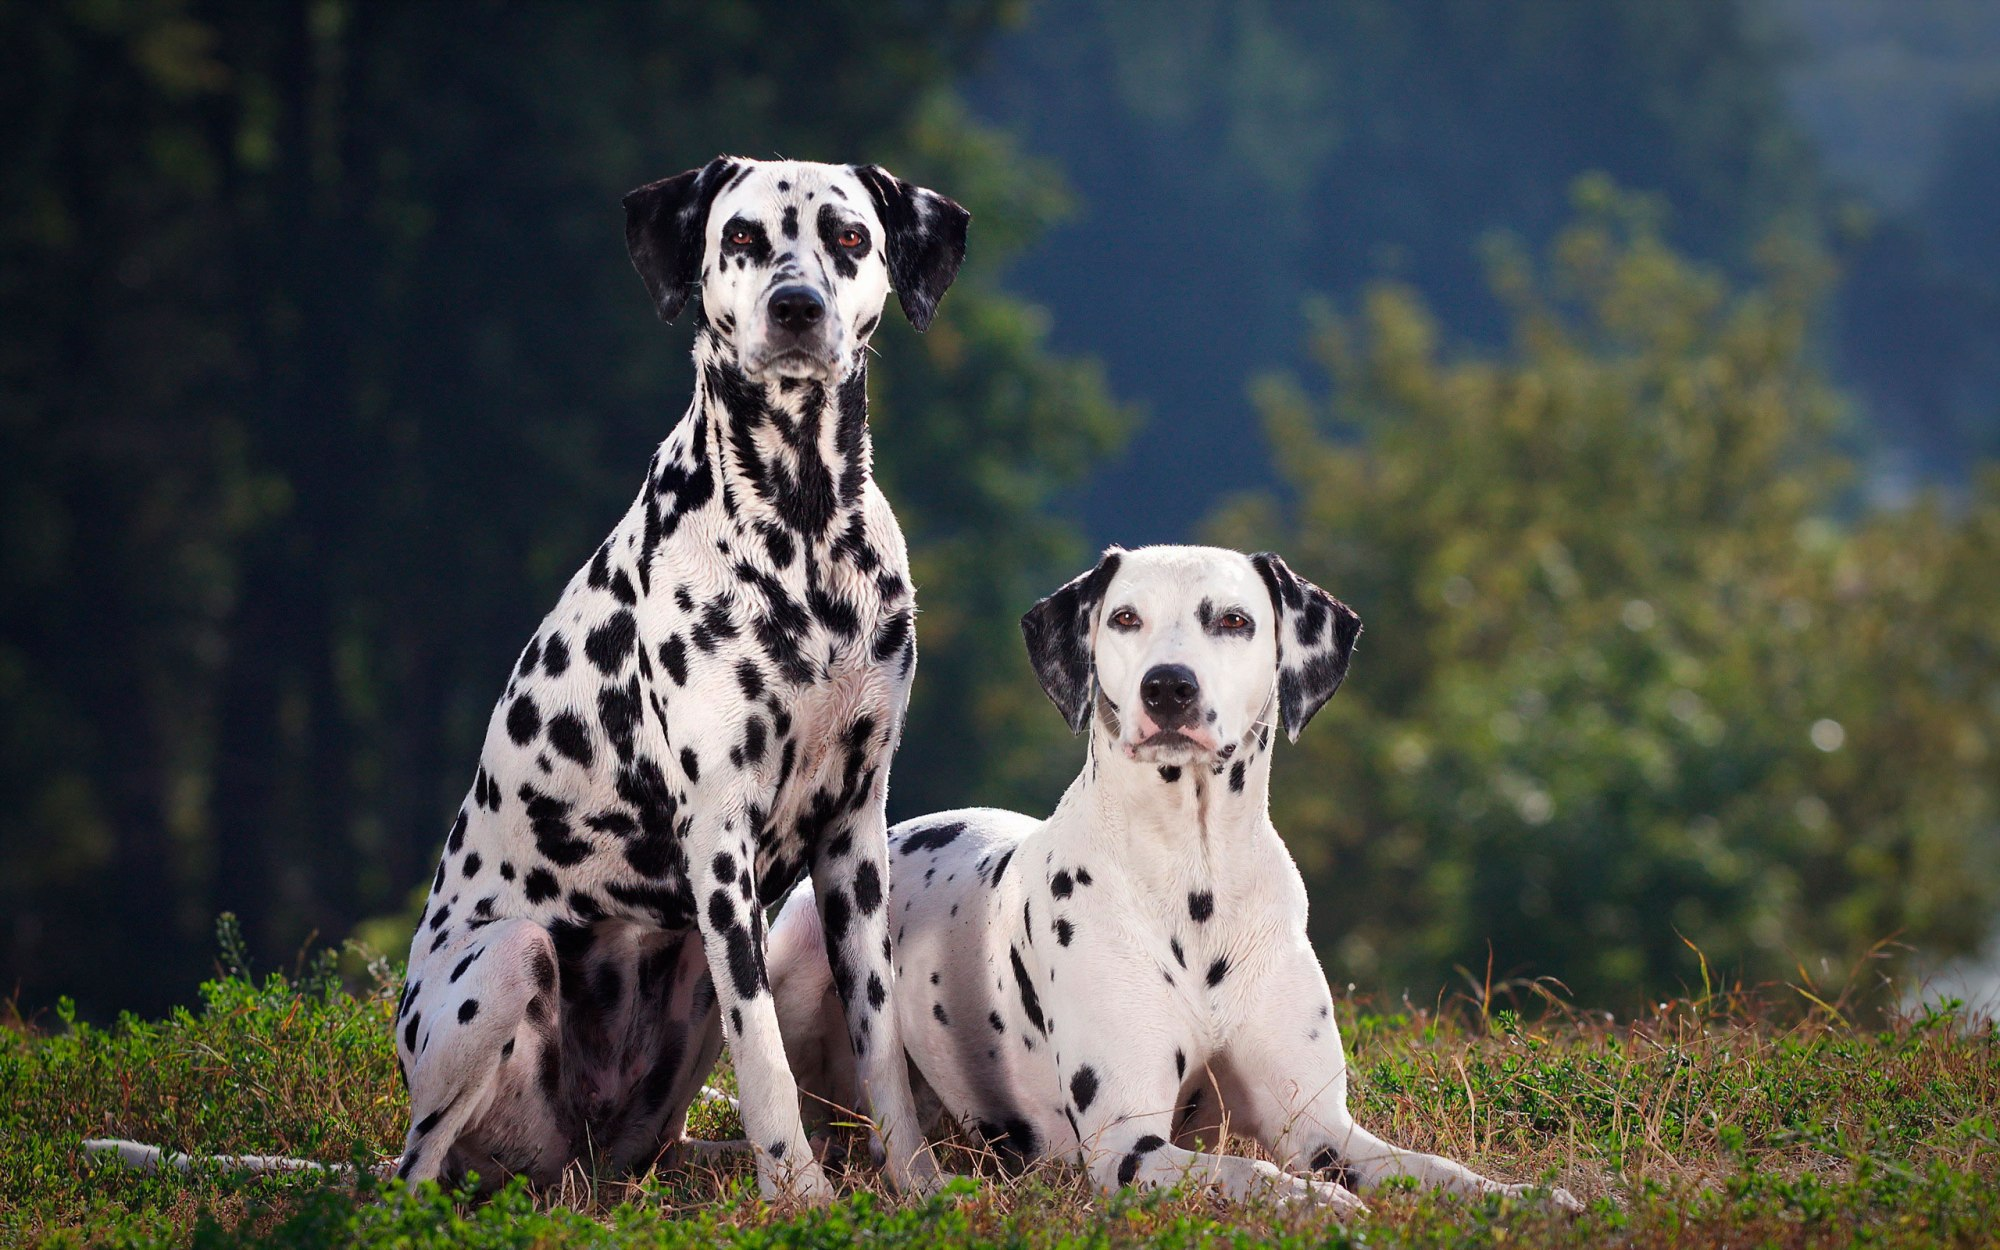 Dalmation Canis Lupus Familiaris Symbolic Meaning Whispers